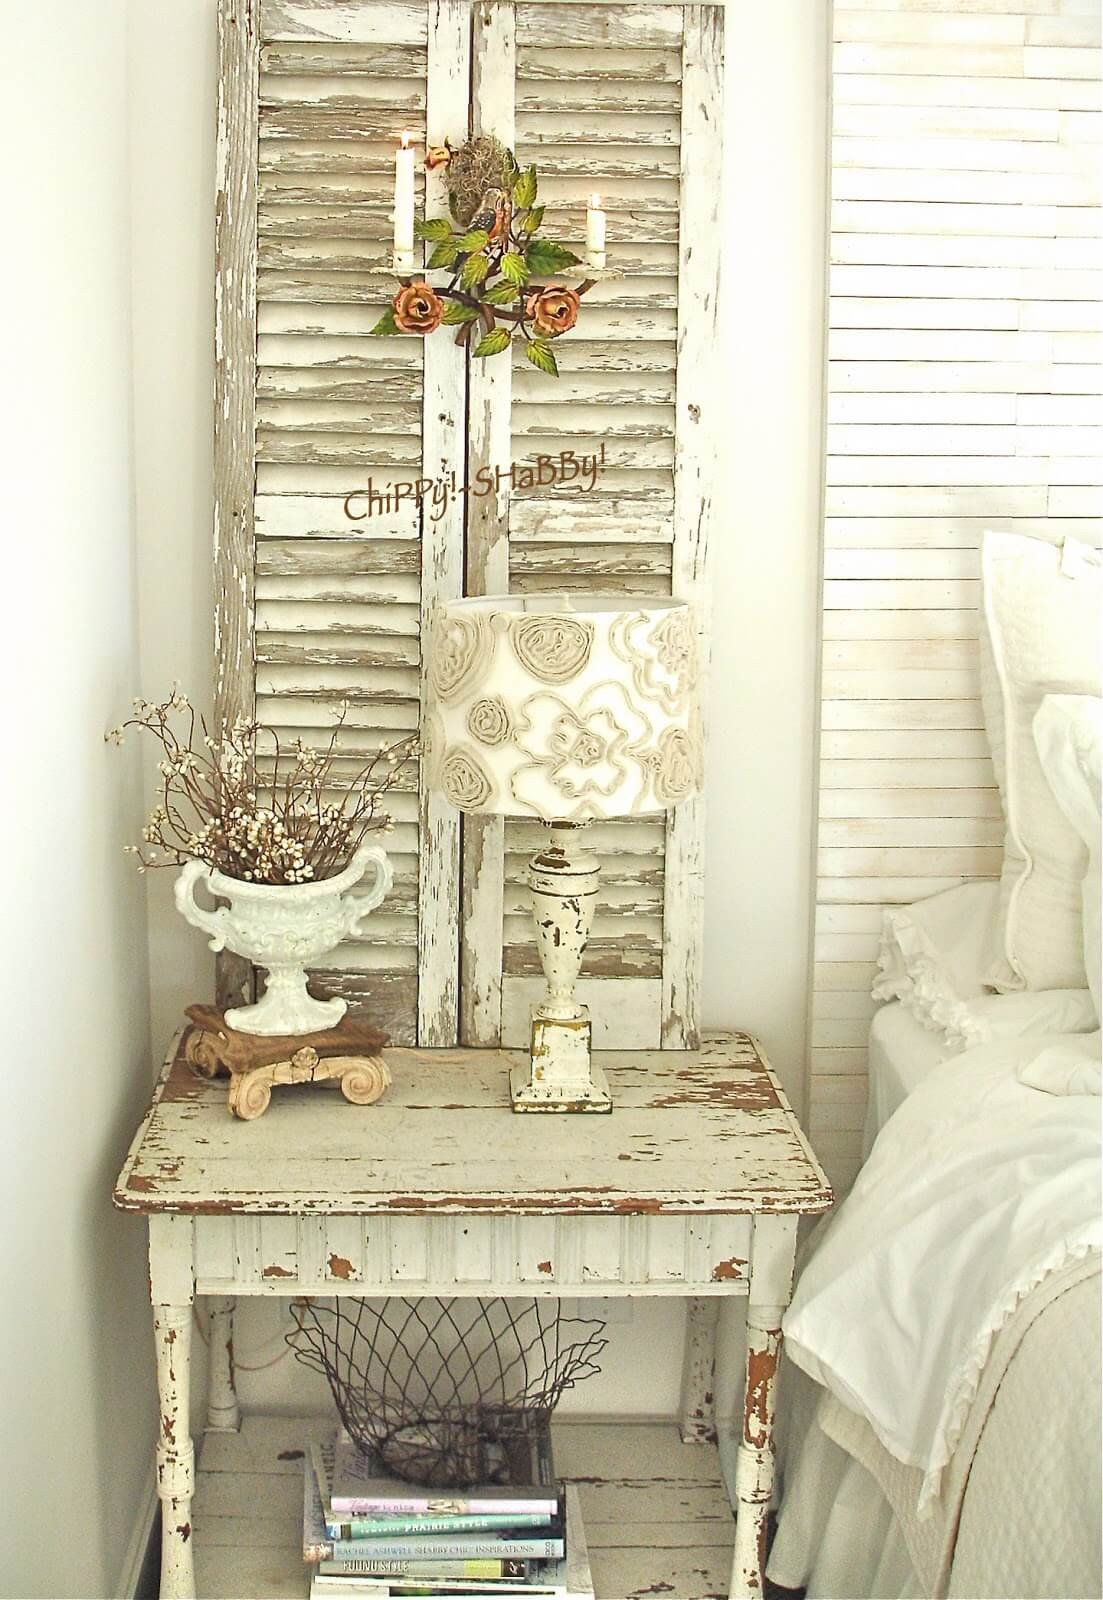 Vintage Wall Decor for Bedroom Lovely 35 Best Shabby Chic Bedroom Design and Decor Ideas for 2017